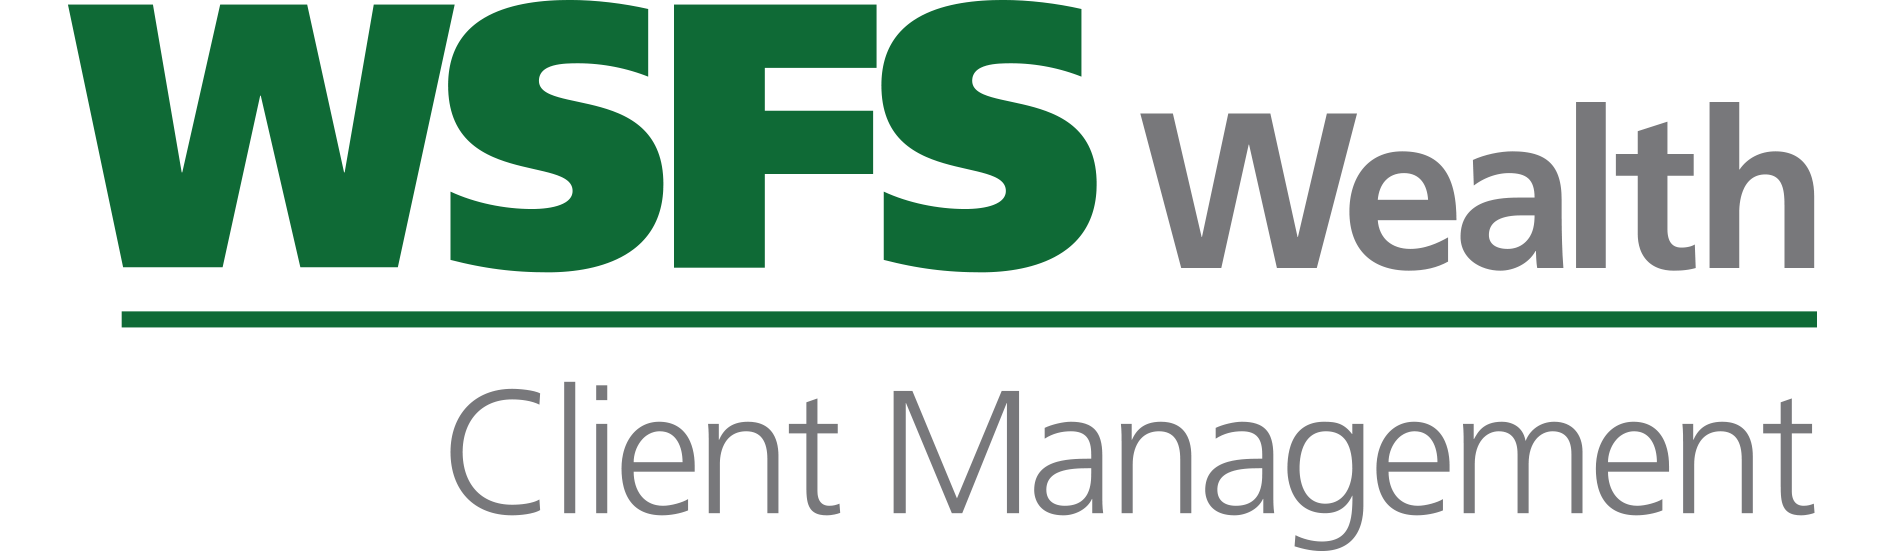 wsfs wealth client management